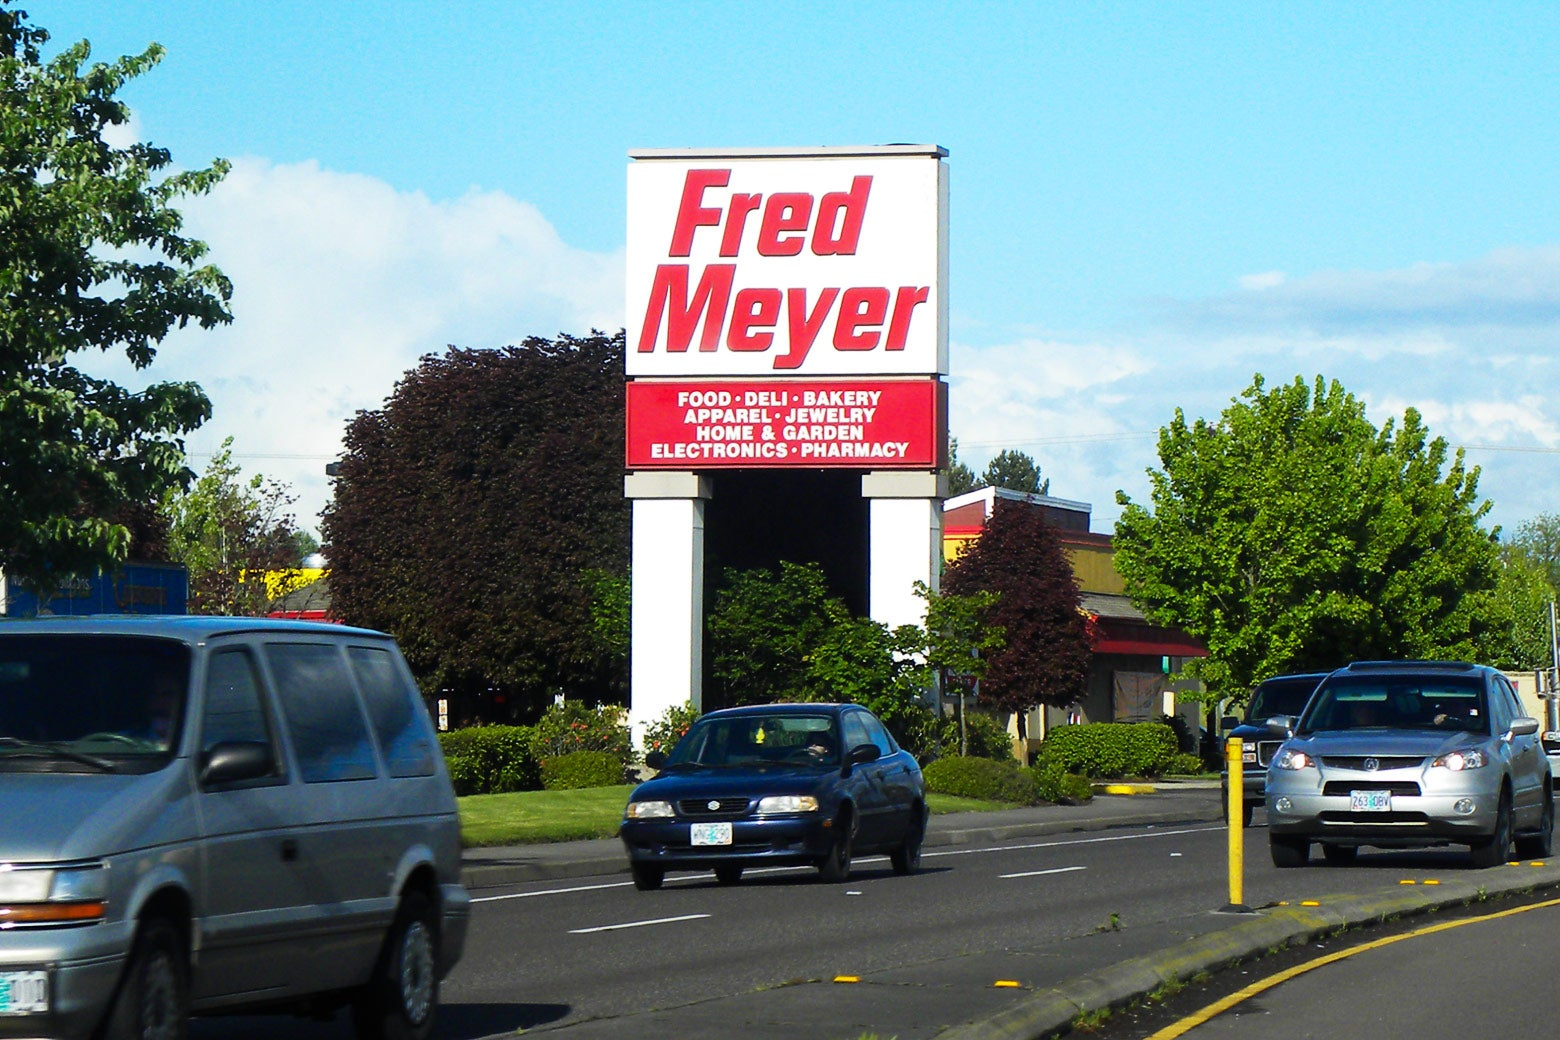 A Fred Meyer store in Hillsboro, Oregon.